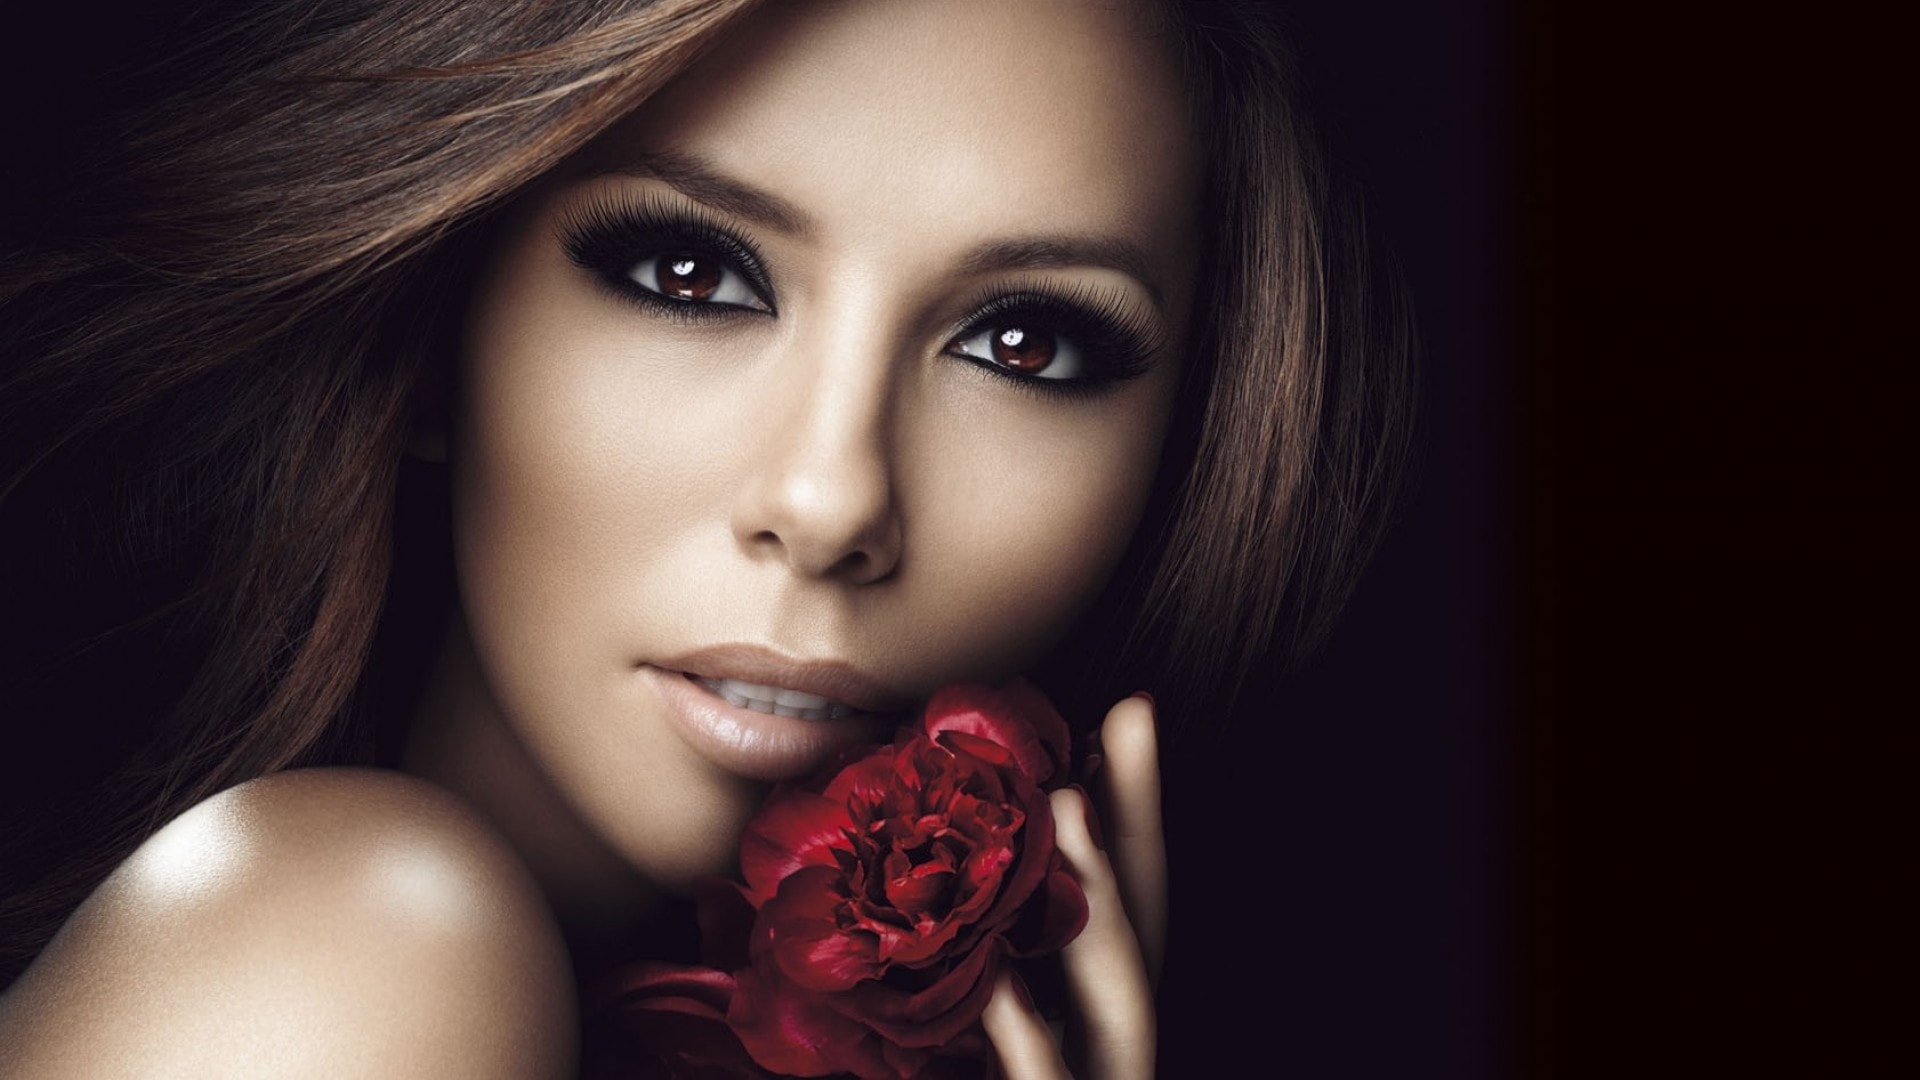 Eva Longoria Backgrounds